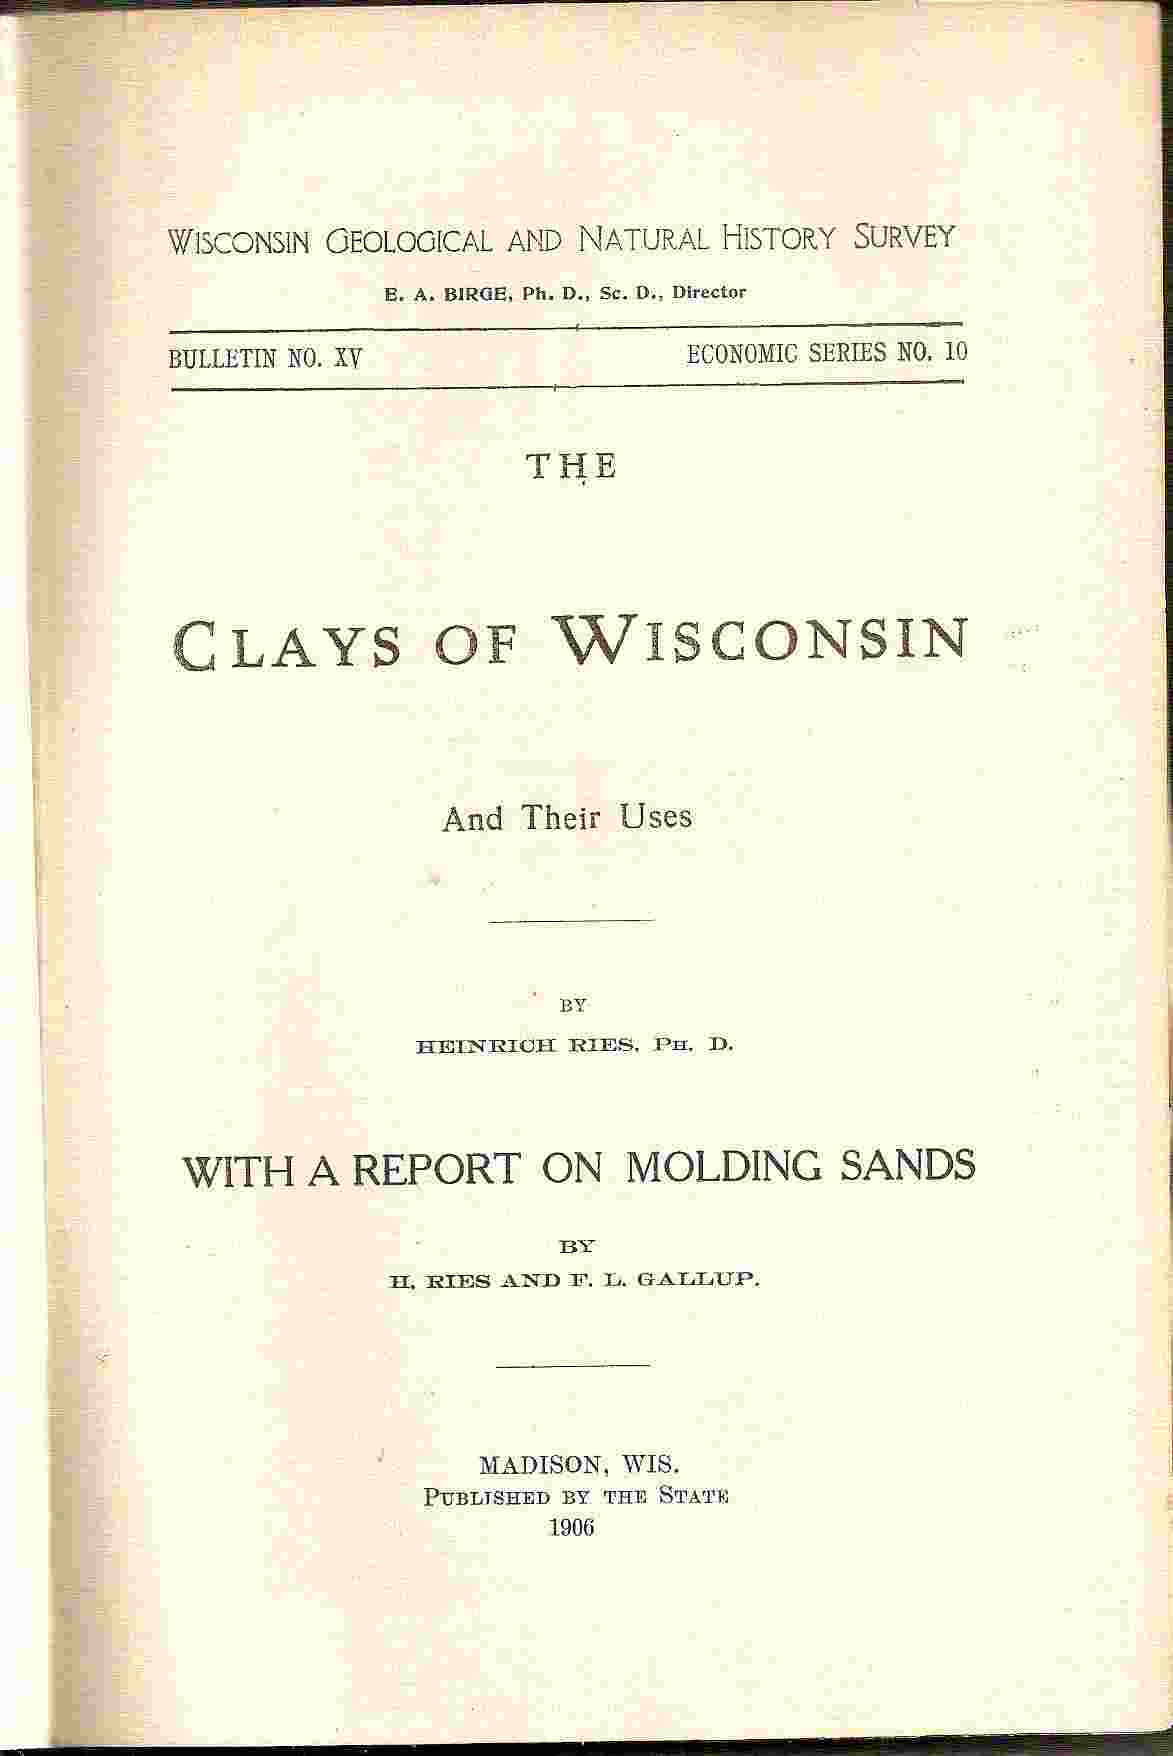 Image for THE CLAYS OF WISCONSIN (BULLETIN NO. XV, NO 10)  And Their Uses (With a Report on MOLDING SANDS) by H. Ries & F. L. Gallup